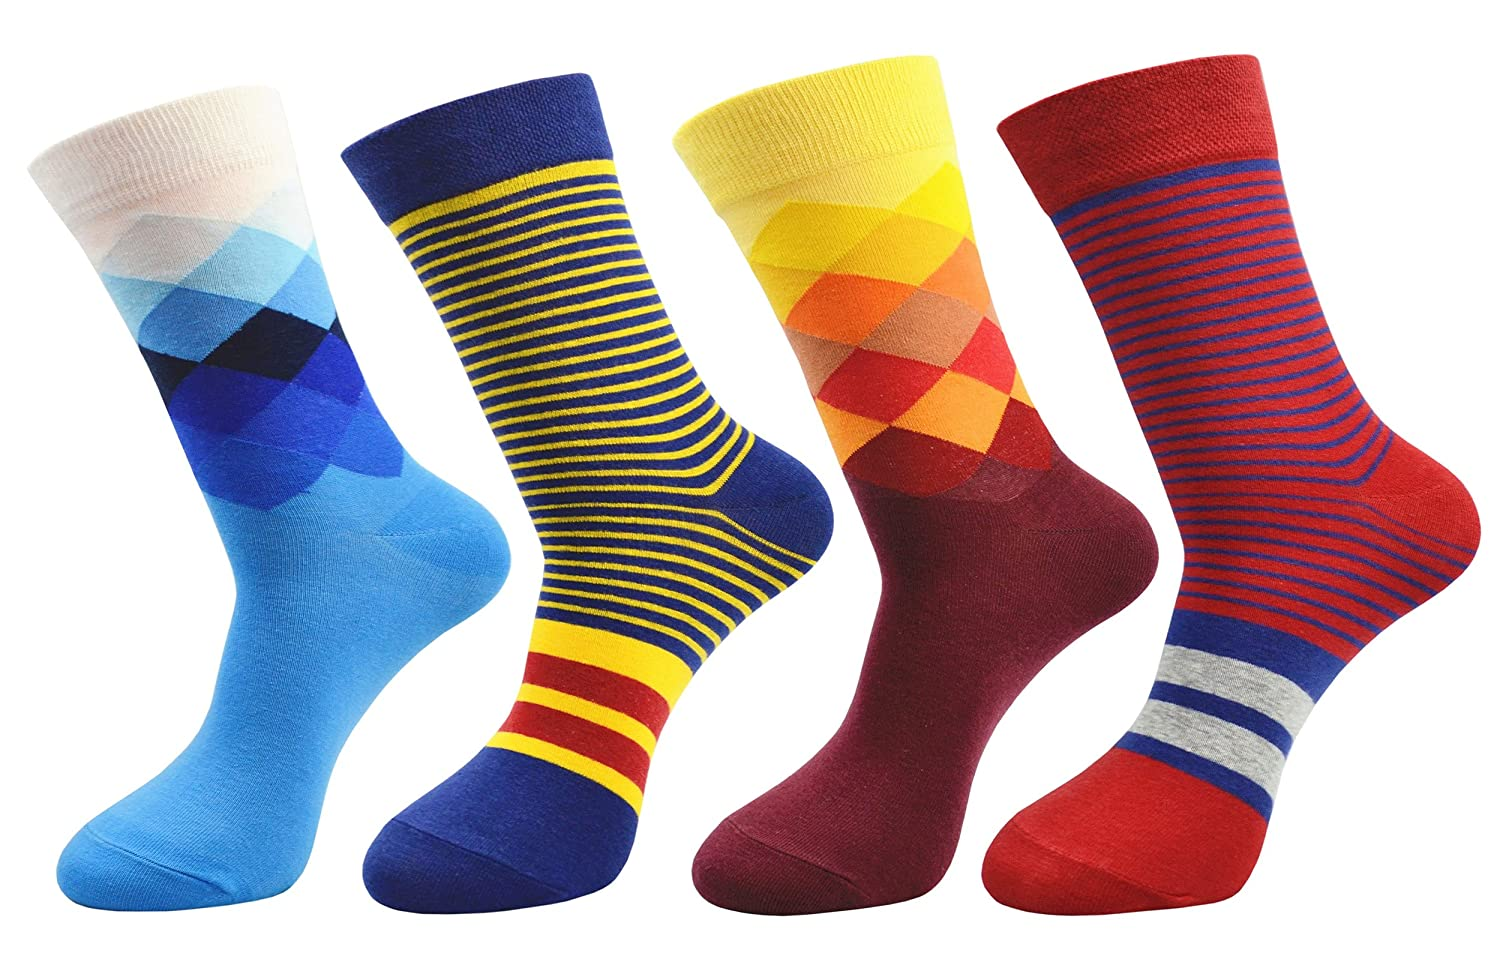 FULIER Mens 4 Pack Colorful Funky Cotton Rich Dress Calf Socks,Comfortable,Breathable,Smart Design Crew Socks